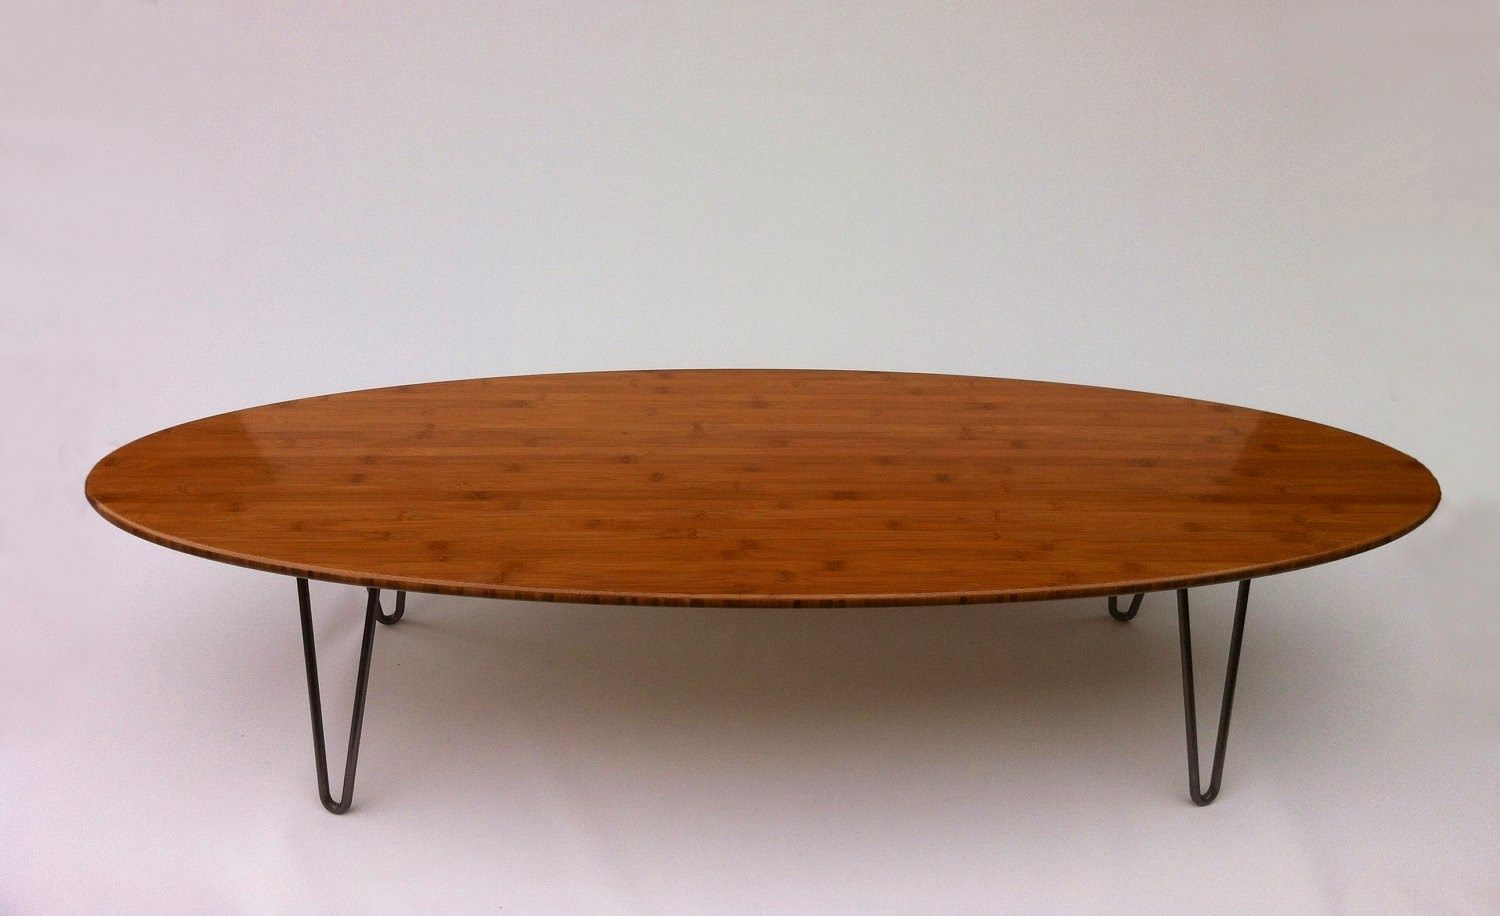 Oval Coffee Table Clic Design Wood With Metal